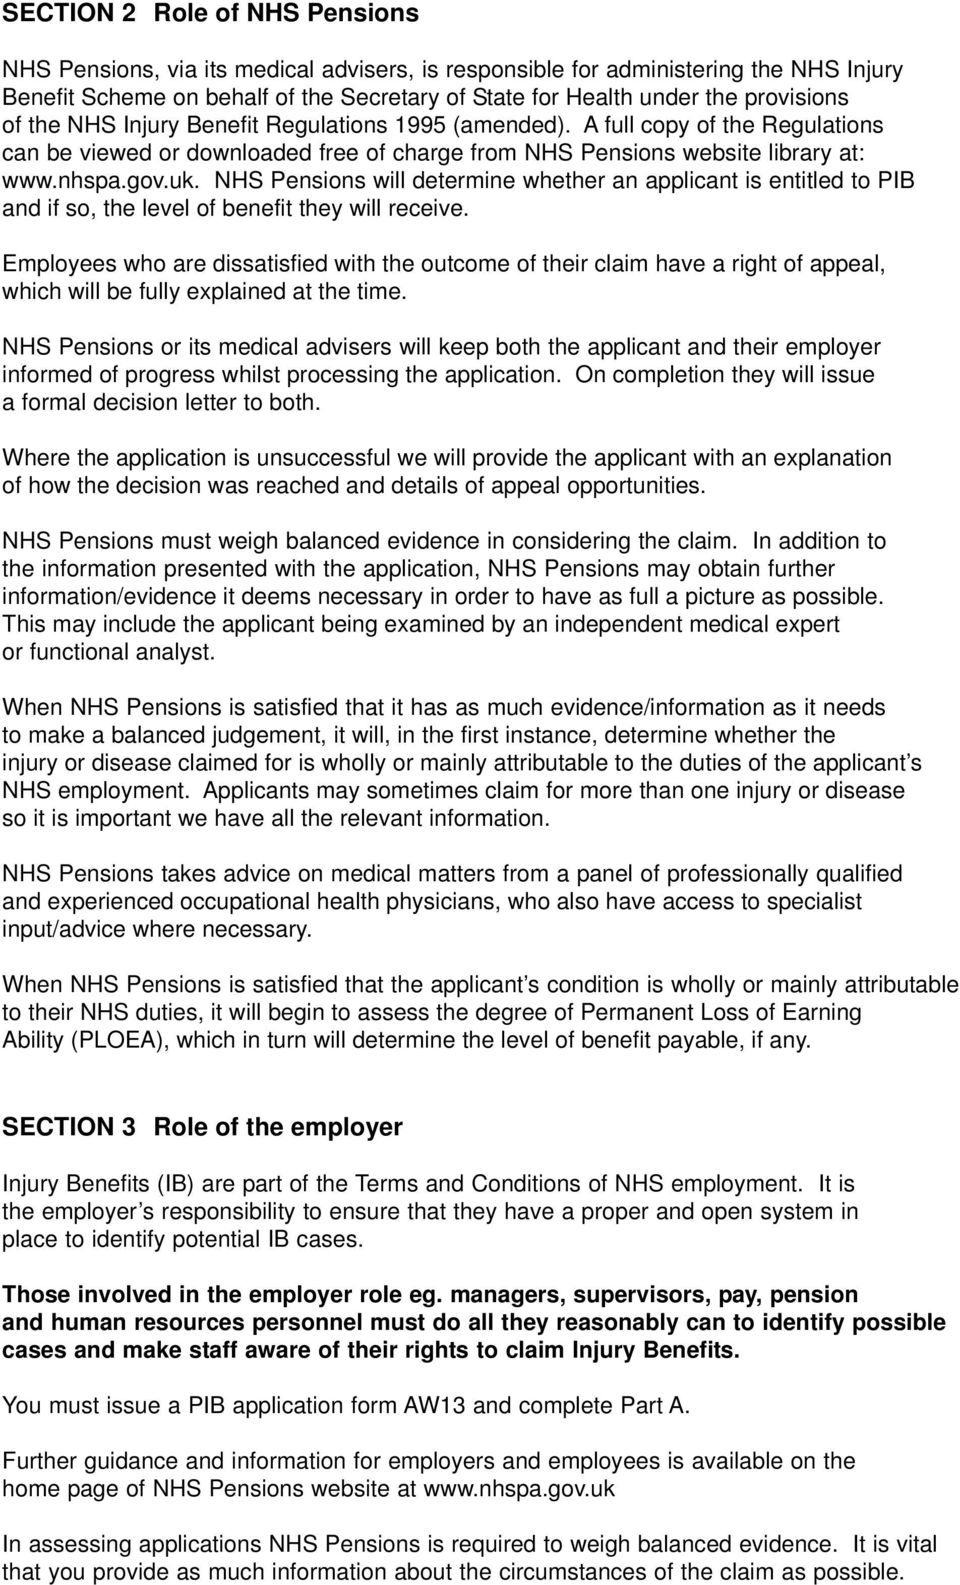 NHS Pensions will determine whether an applicant is entitled to PIB and if so, the level of benefit they will receive.